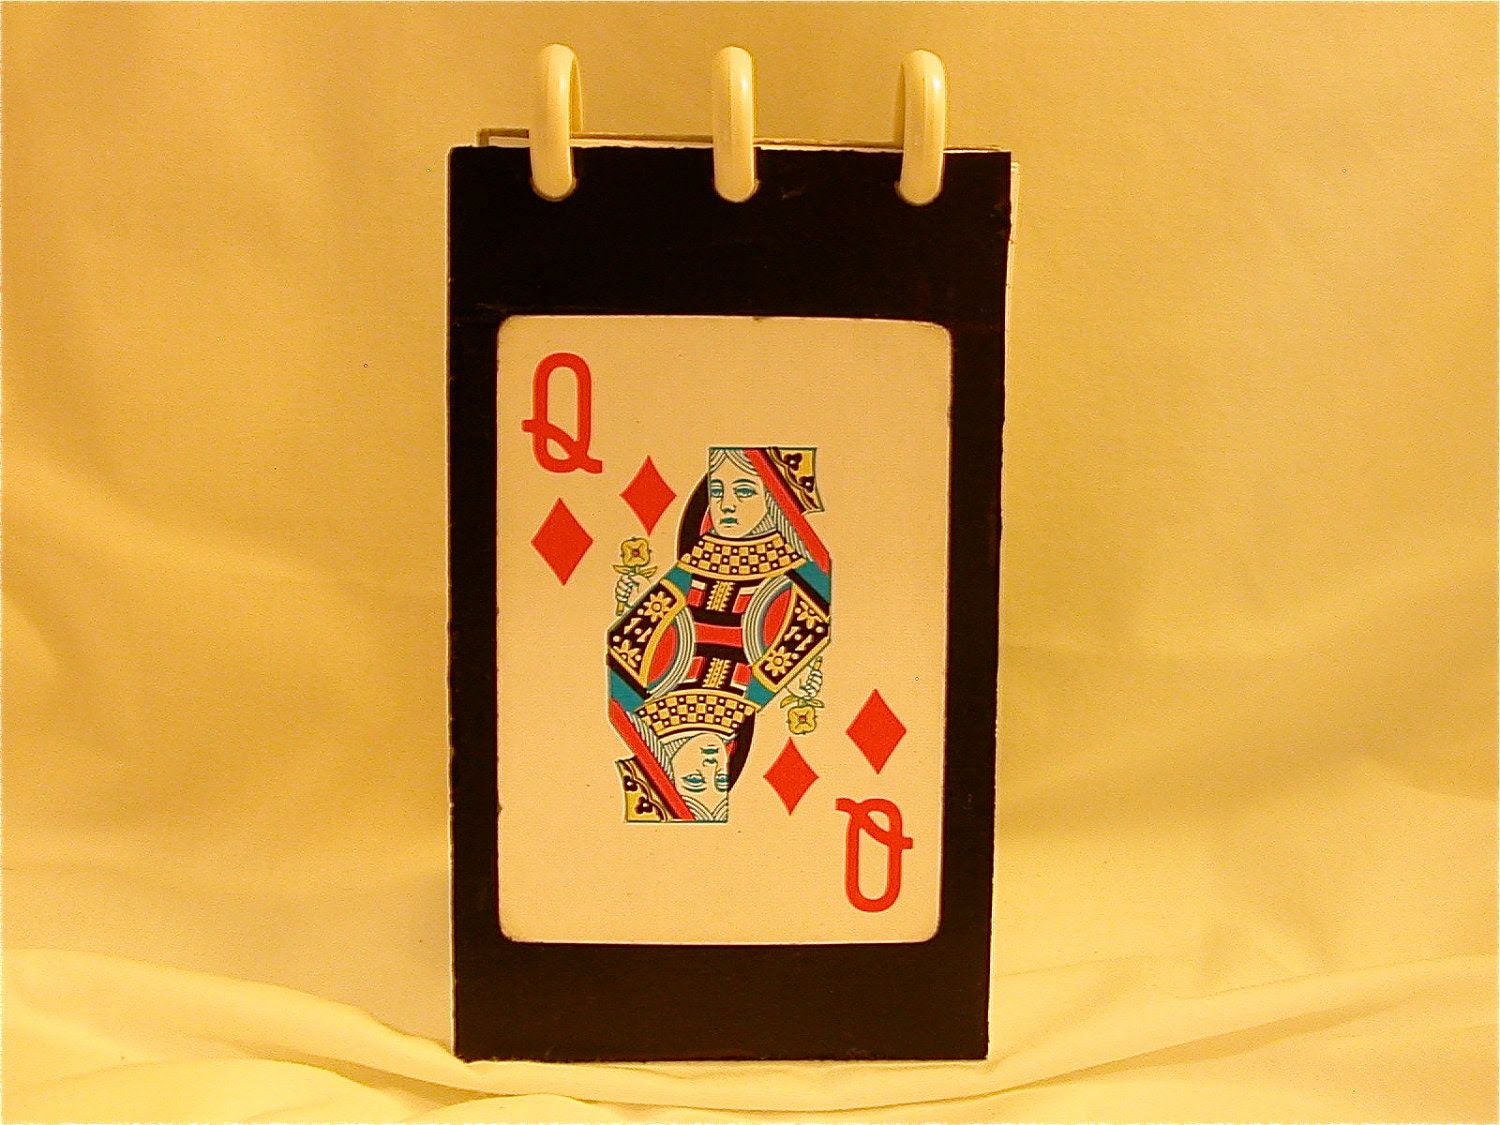 Playing Card PDA 3X5 refillable fliptop notebook,recycled materials